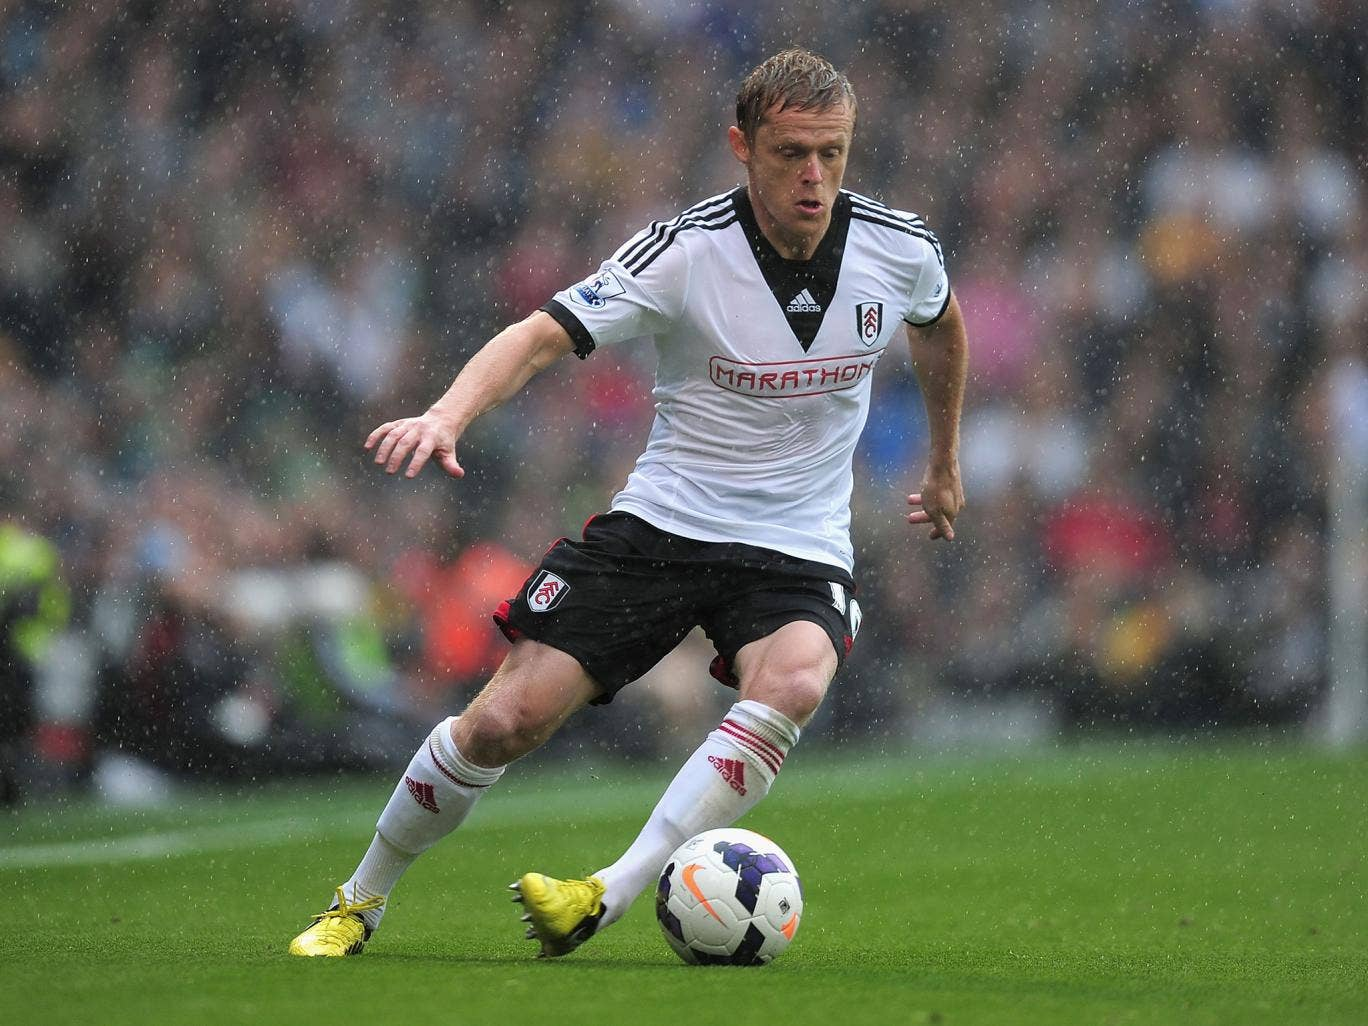 Damian Duff has agreed to join Melbourne City